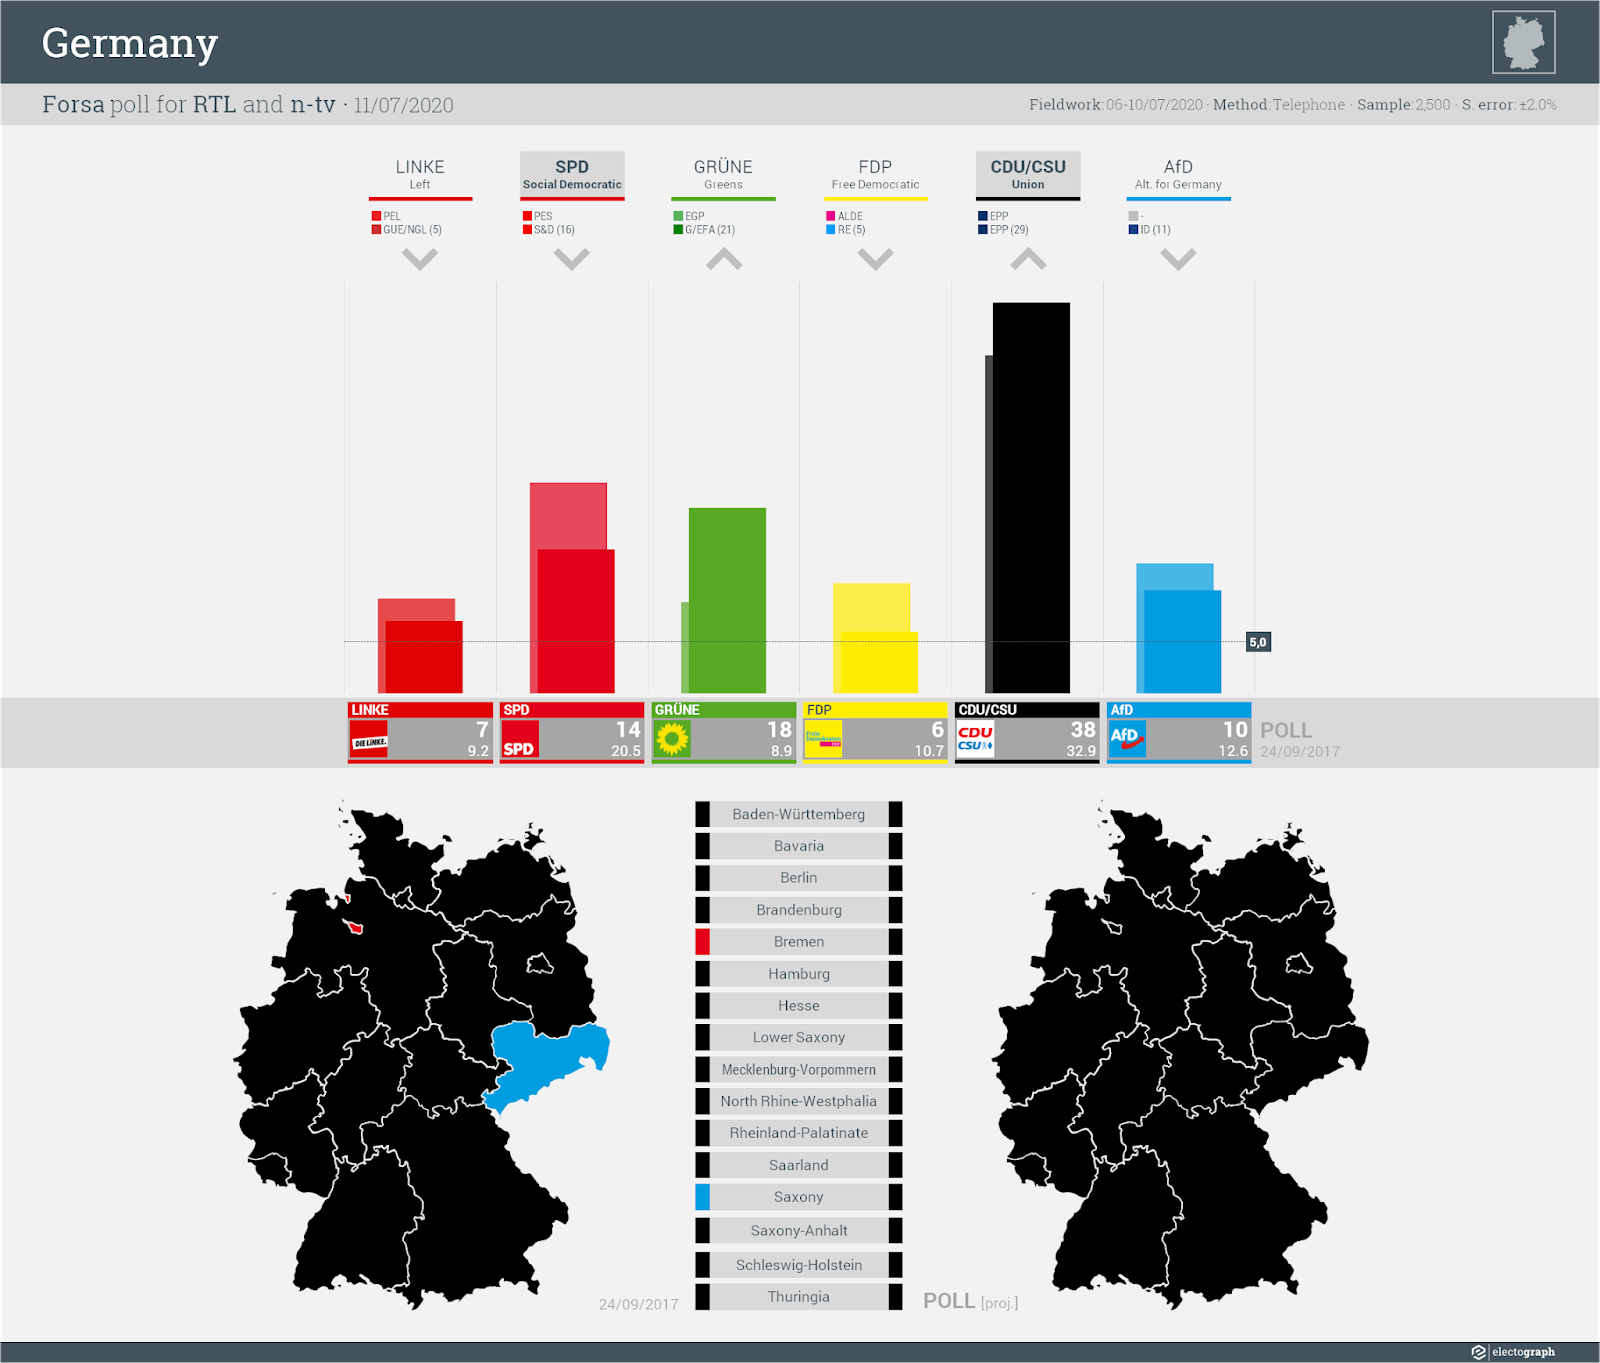 GERMANY: Forsa poll chart for RTL and n-tv, 11 July 2020